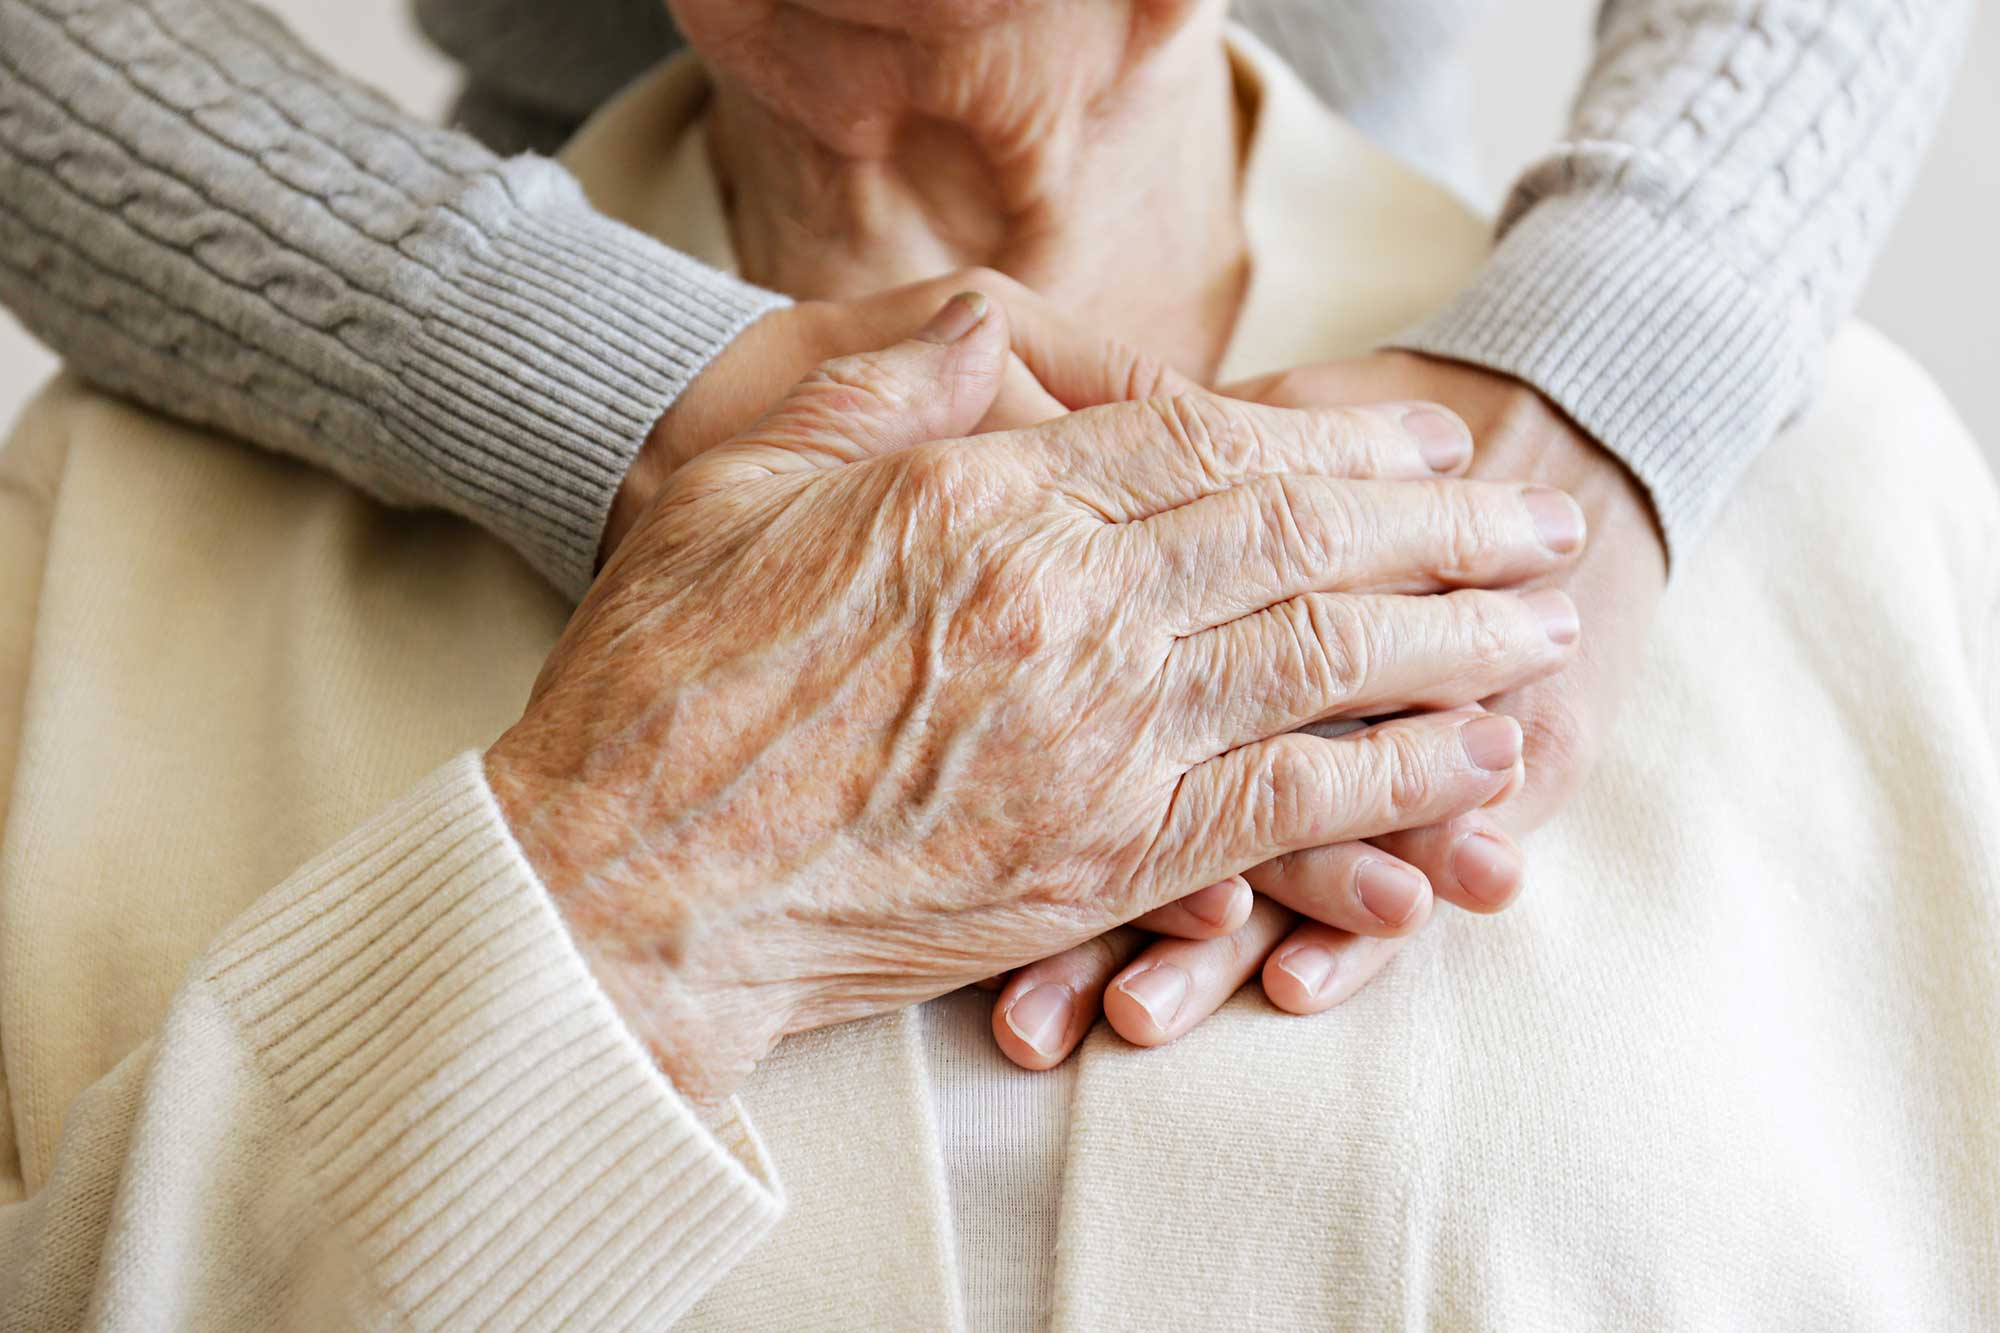 Hands are shown wrapped around an older person